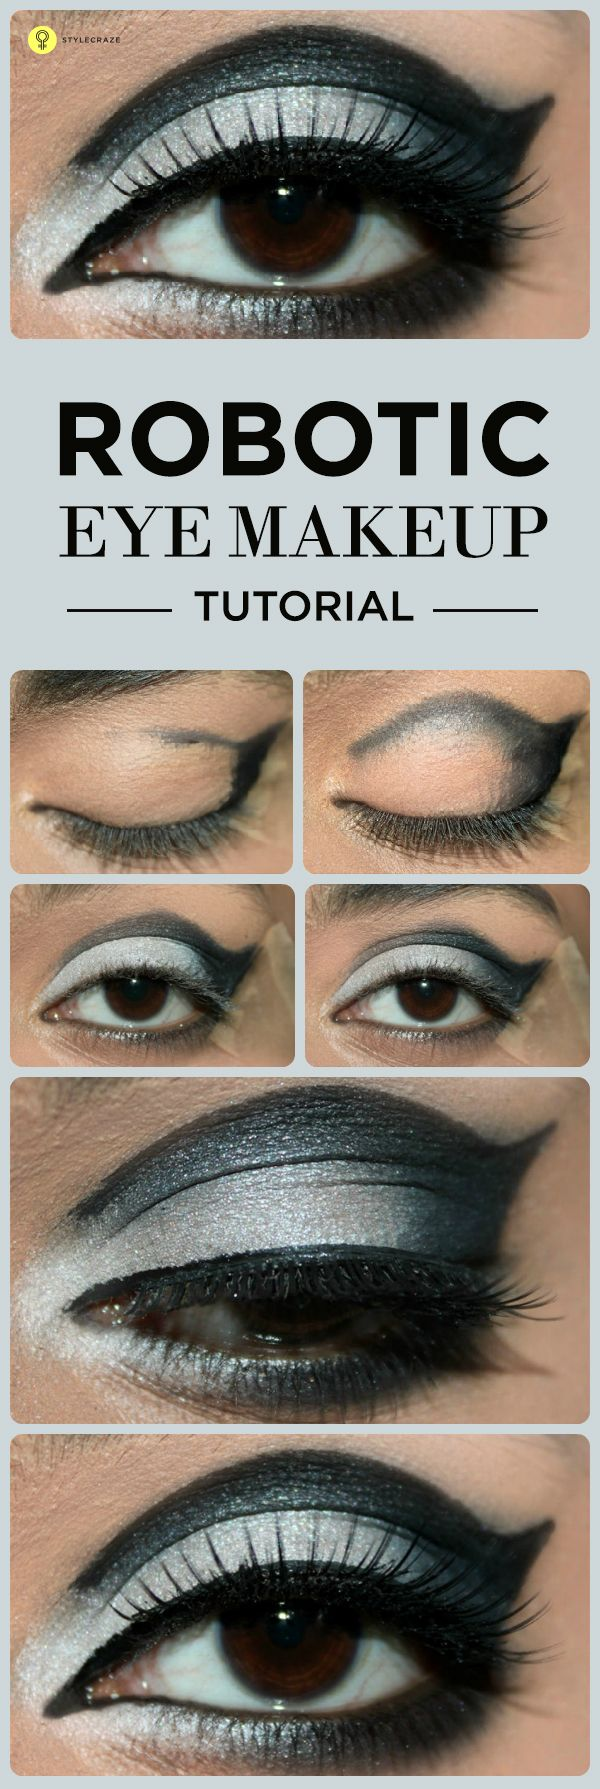 Tired of trying all the eye makeup ideas? Did you ever feel like trying a robotic makeup? Here's a robotic eye makeup tutorial with detailed ...